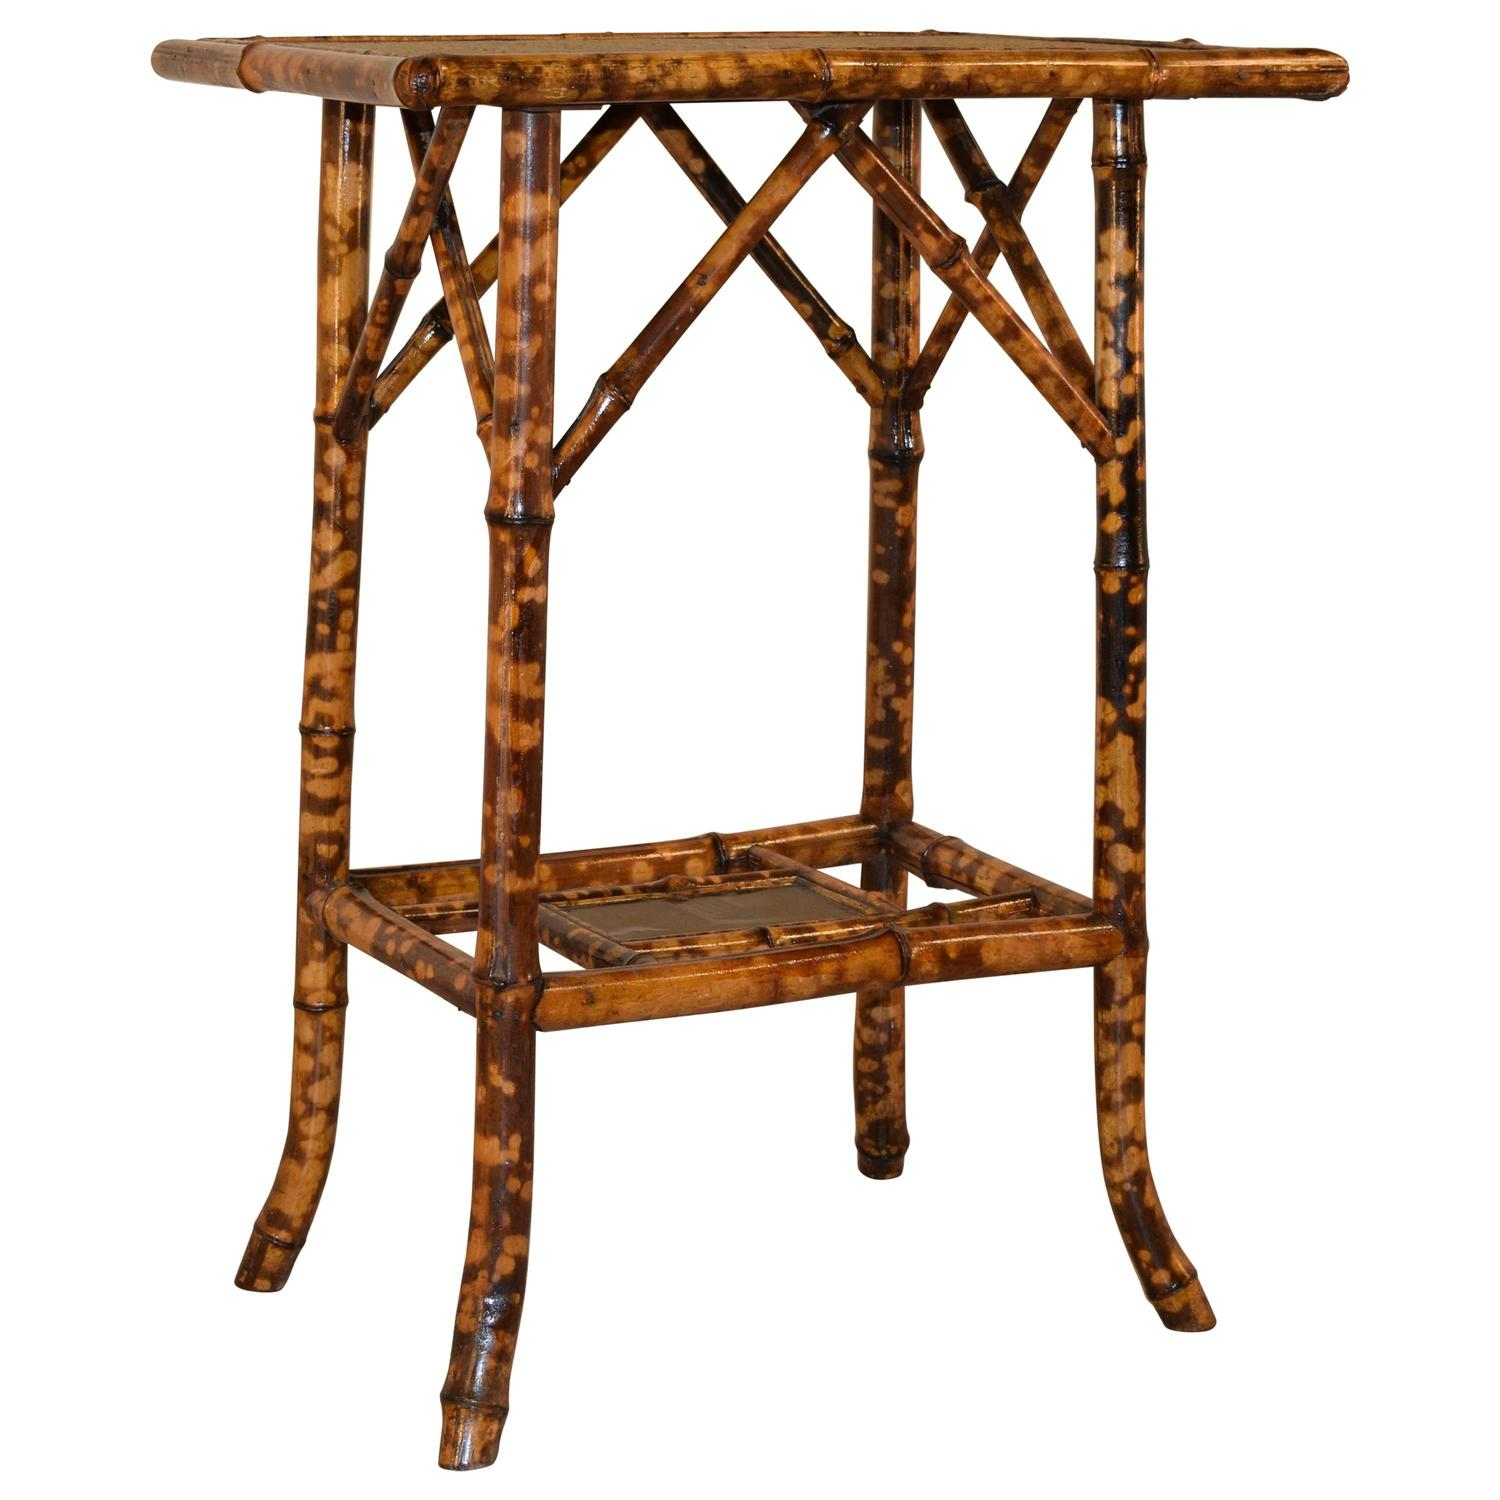 Bamboo Tortoise Coffee Table: 19th Century French Tortoise Bamboo Side Table For Sale At